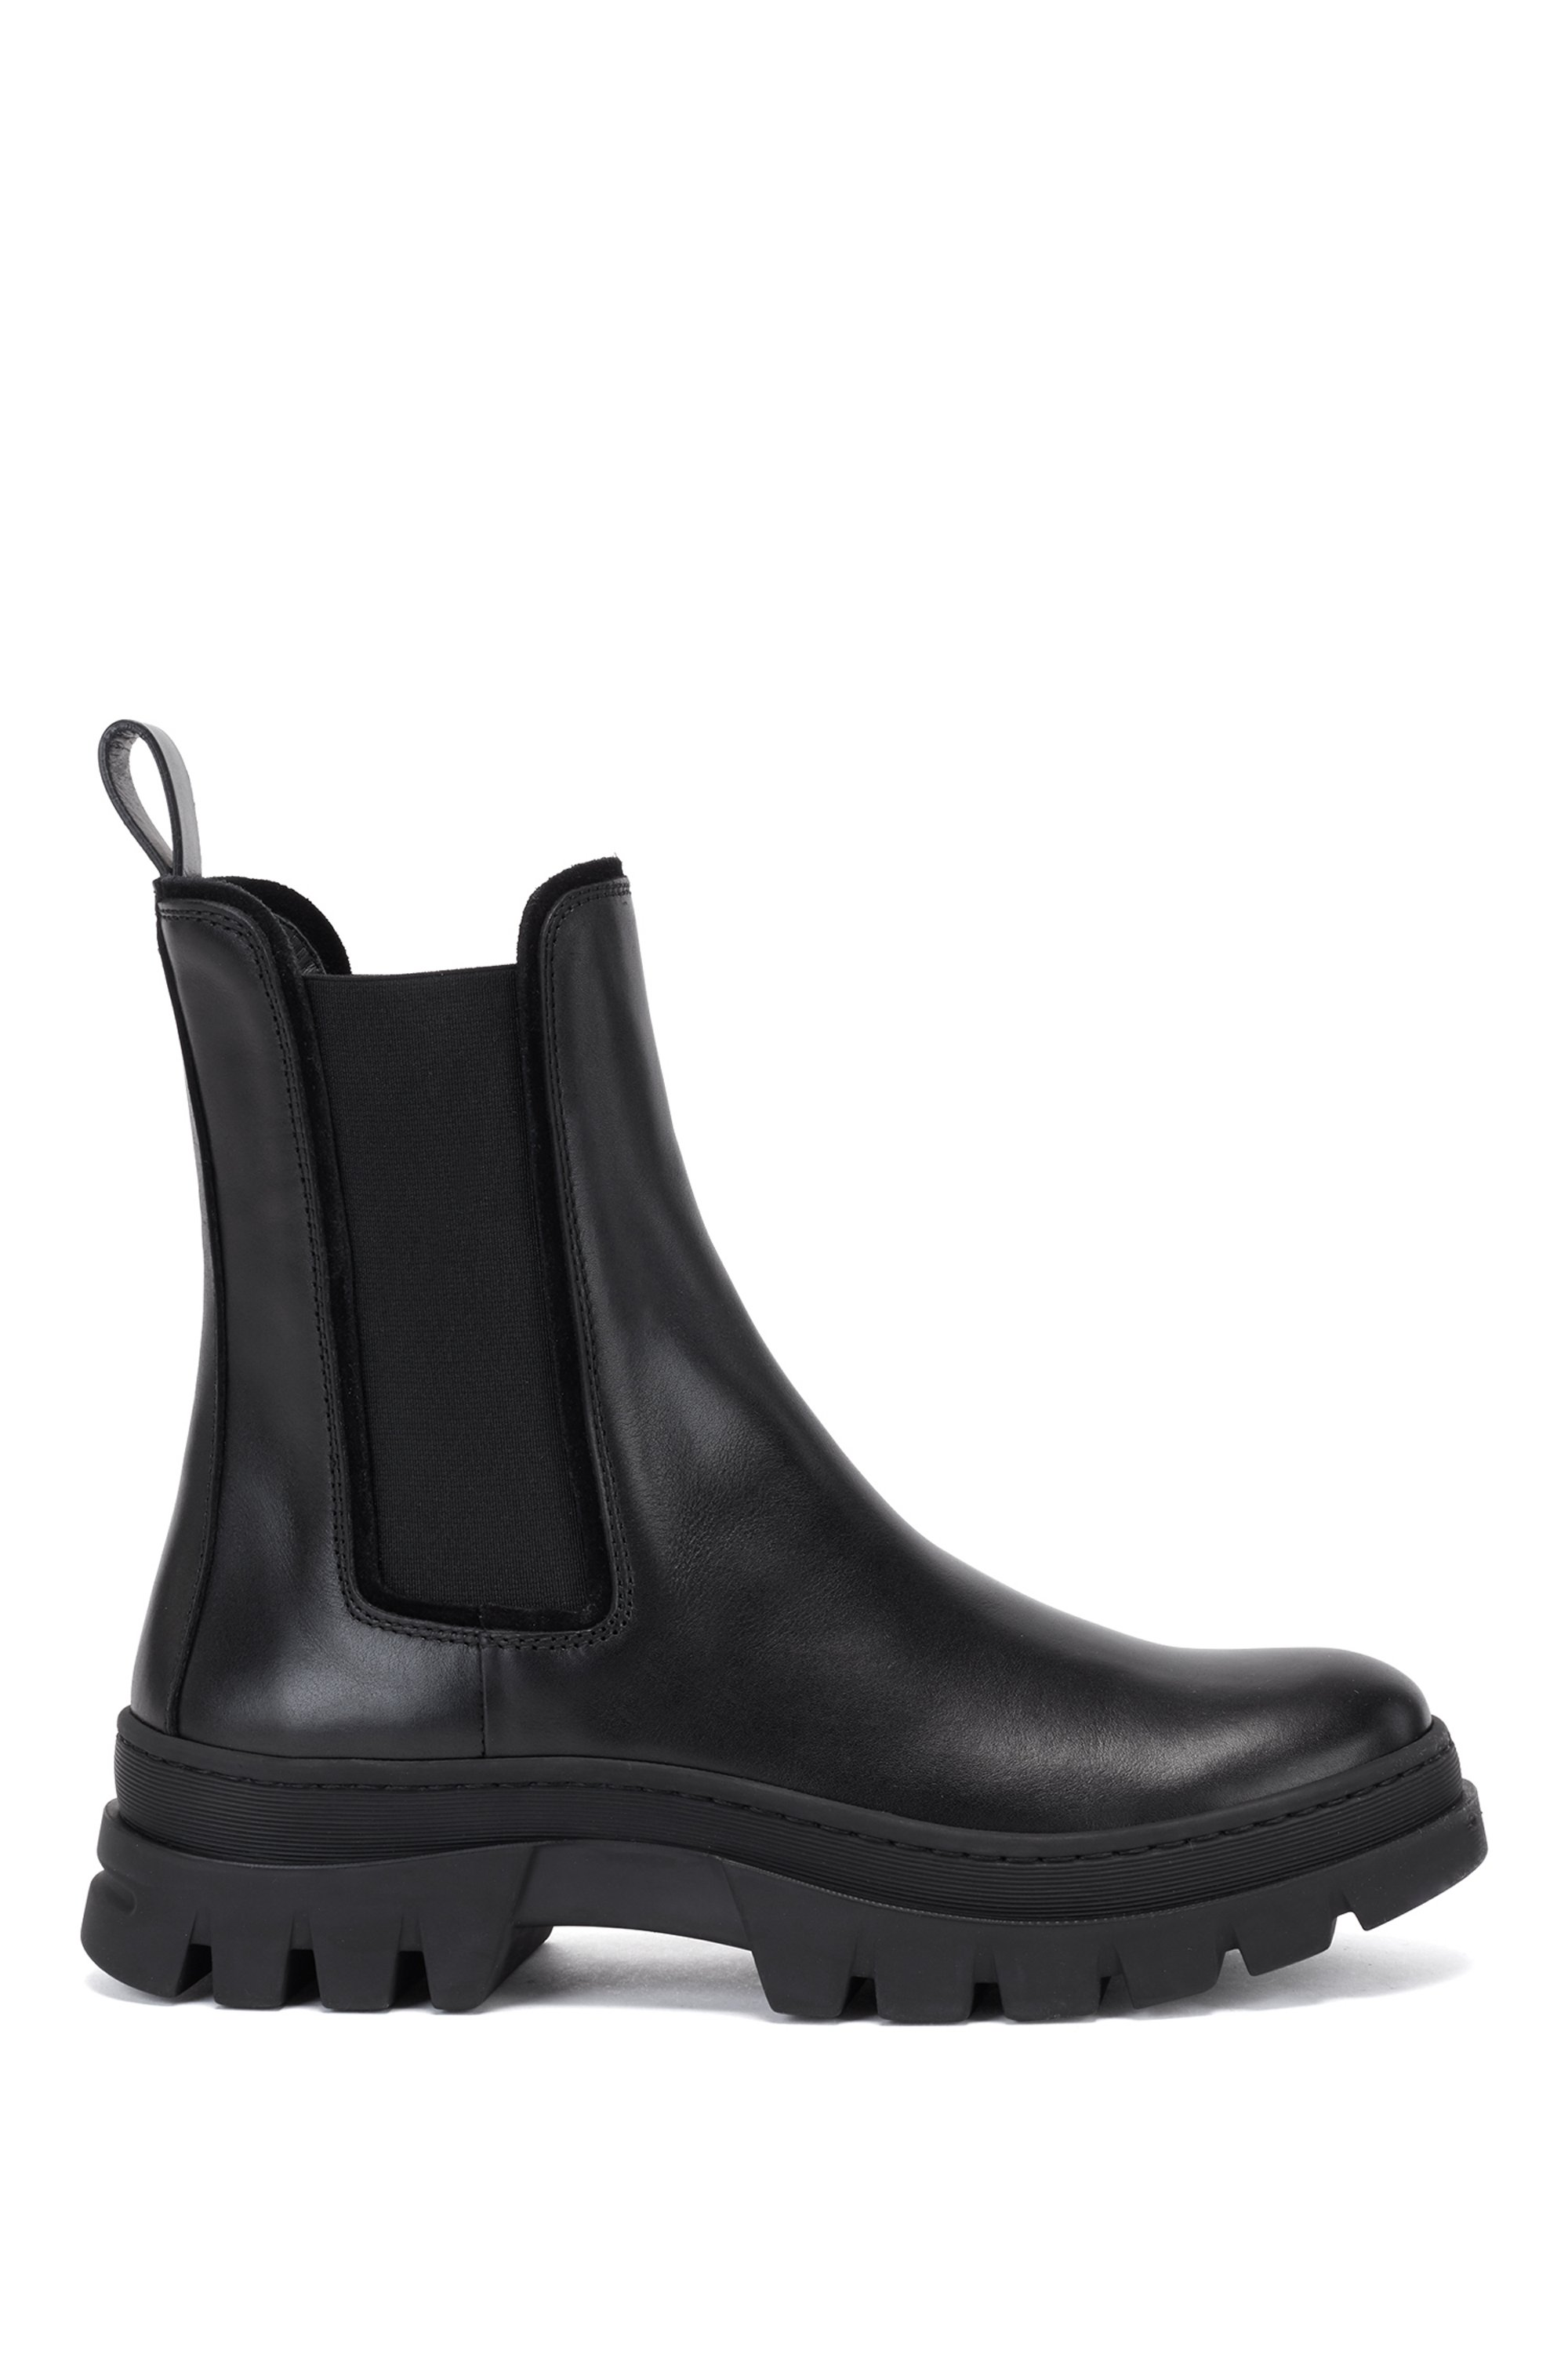 Italian-leather Chelsea boots with rubber lug sole, Schwarz